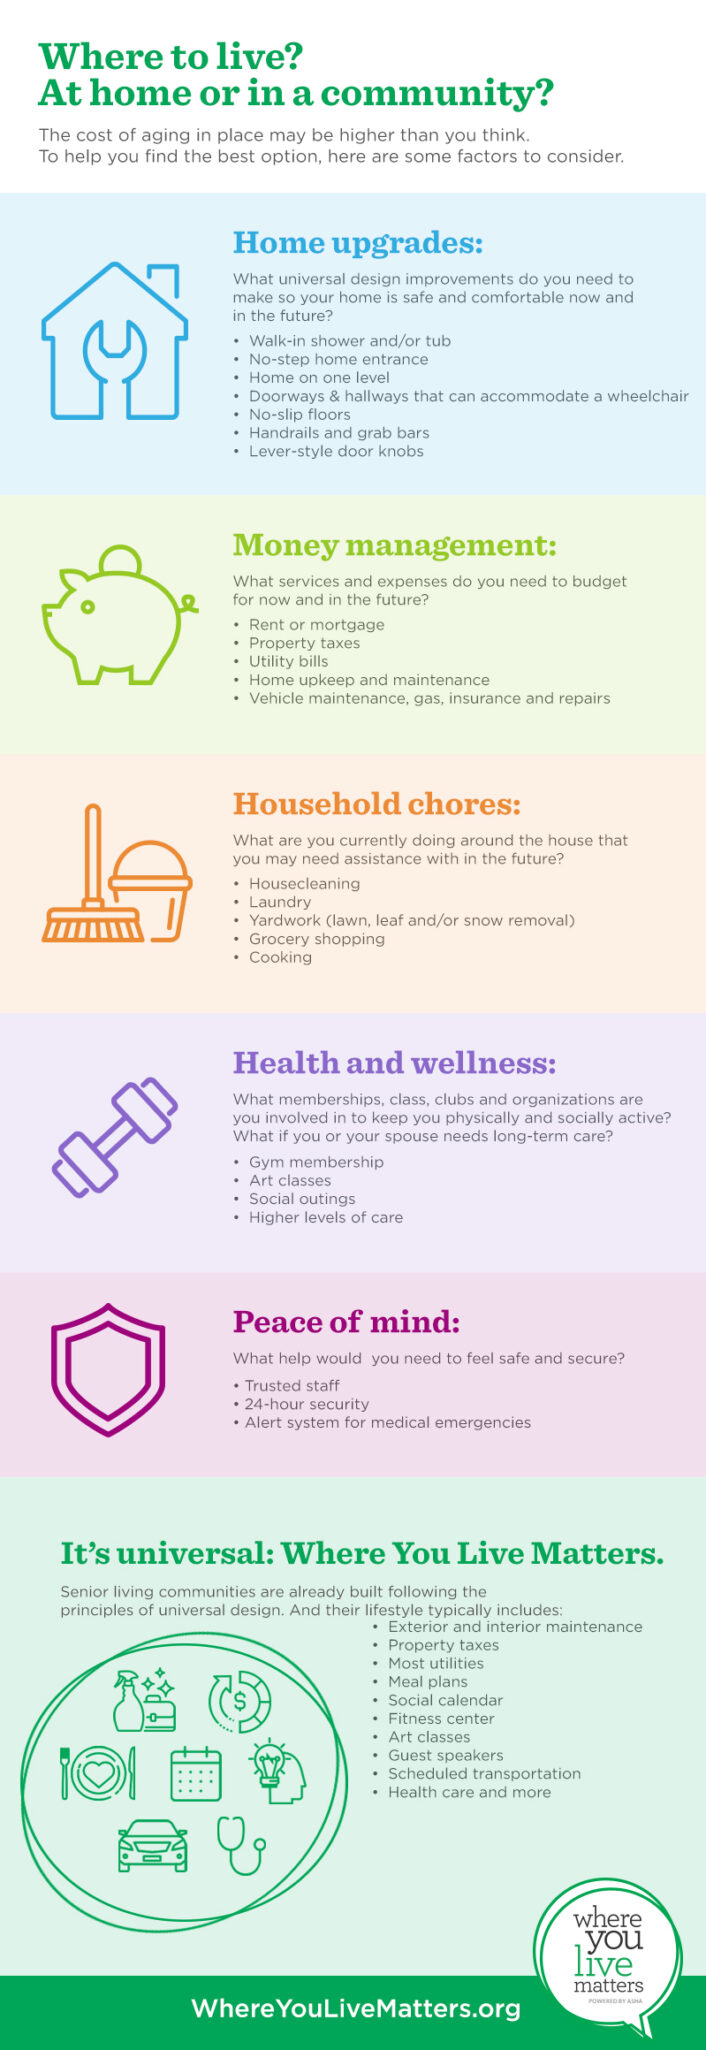 infographic explaining the costs of aging in place vs moving to a senior living community